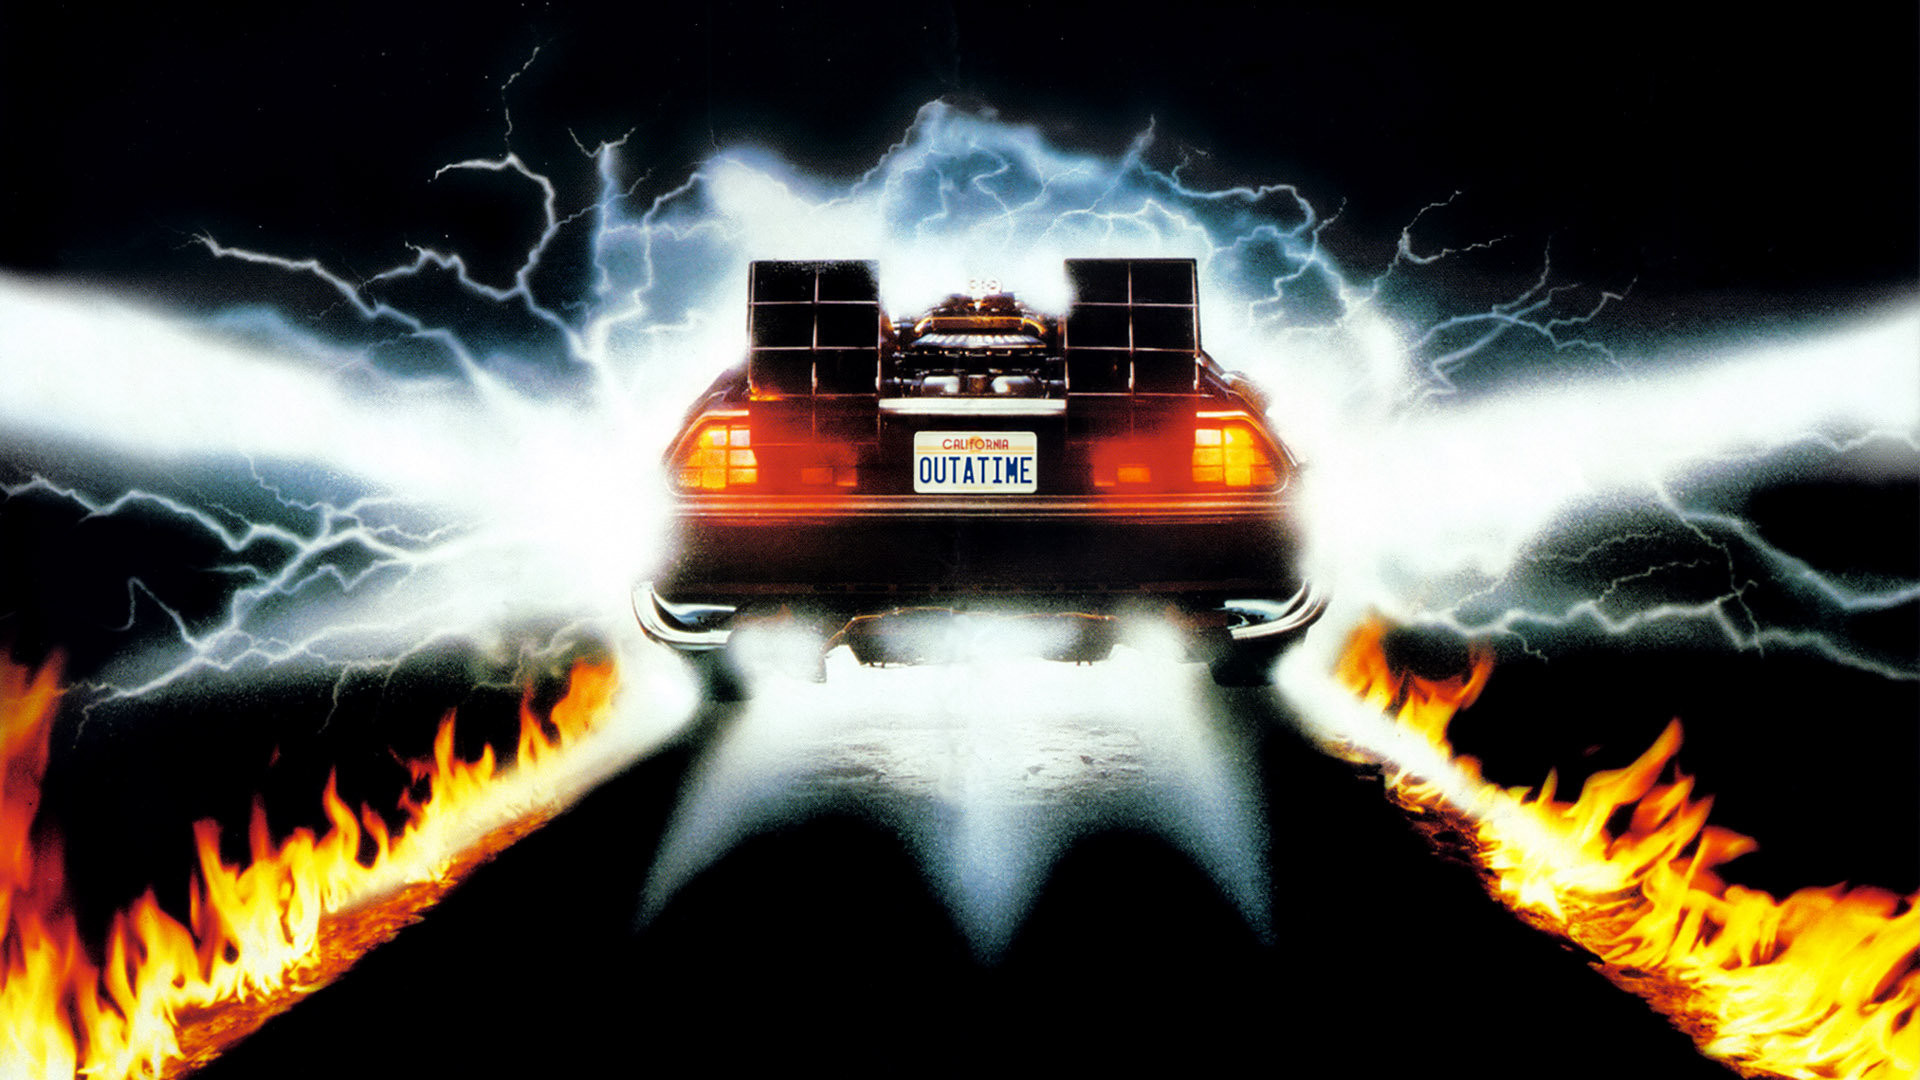 Doc-Brown%E2%80%99s-back-with-thoughts-on-time-travel-MovieTVTechGeeks-BTTF-ad-MovieTVTechGeeks-wallpaper-wp3404698